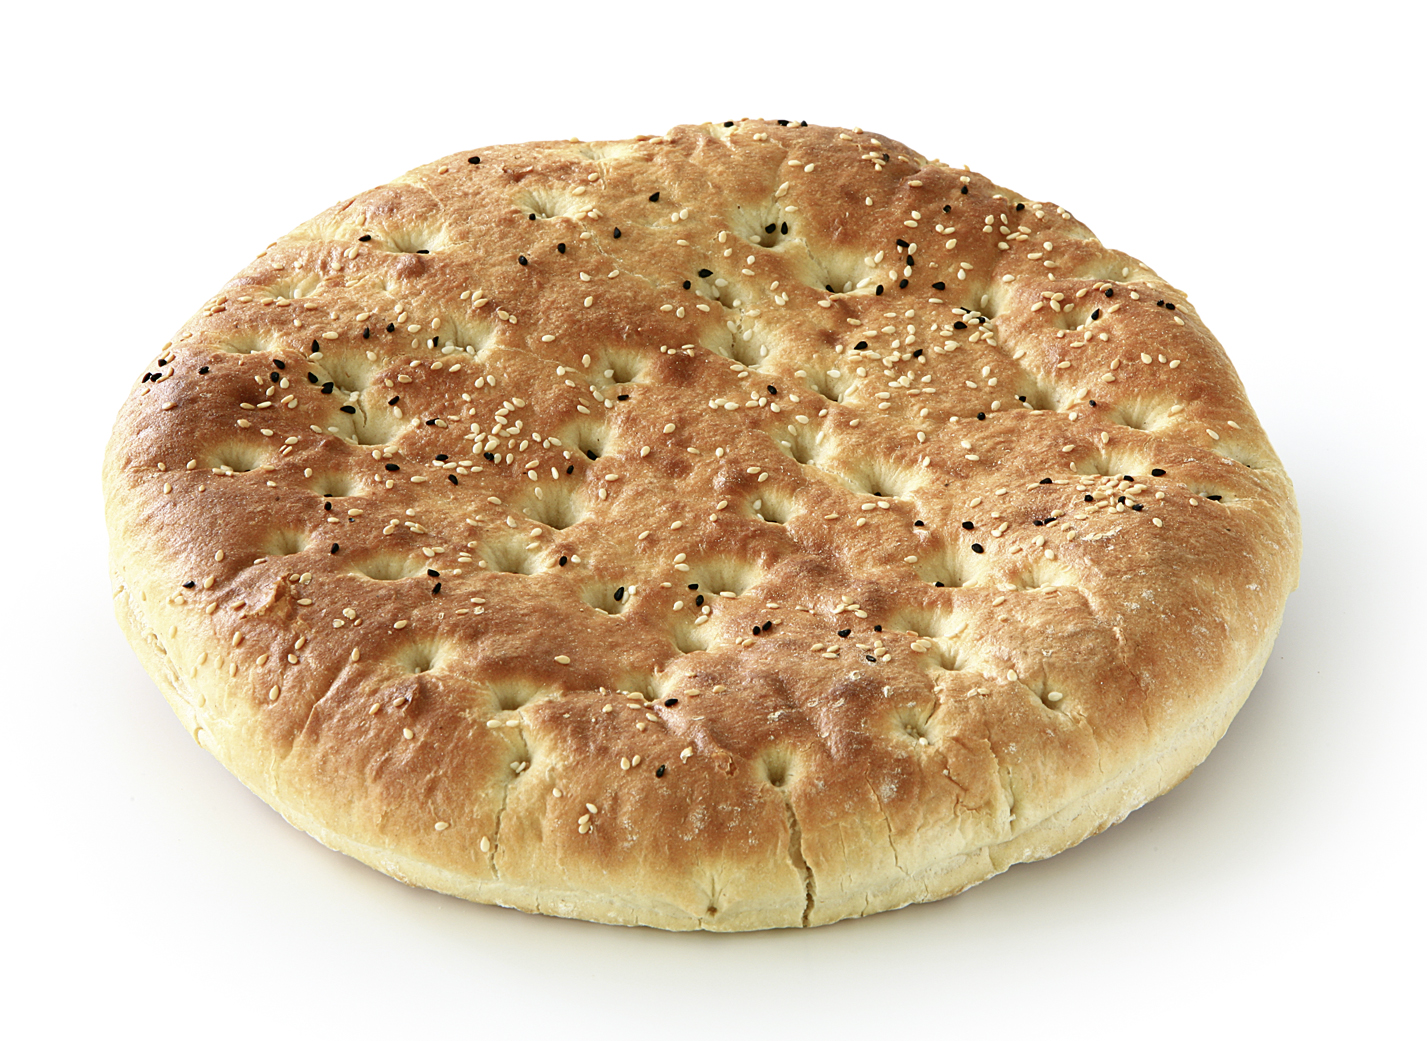 Pita Bread - Wheat bread shaped round and flat and sprinkled with seeds Diameter: 28cm